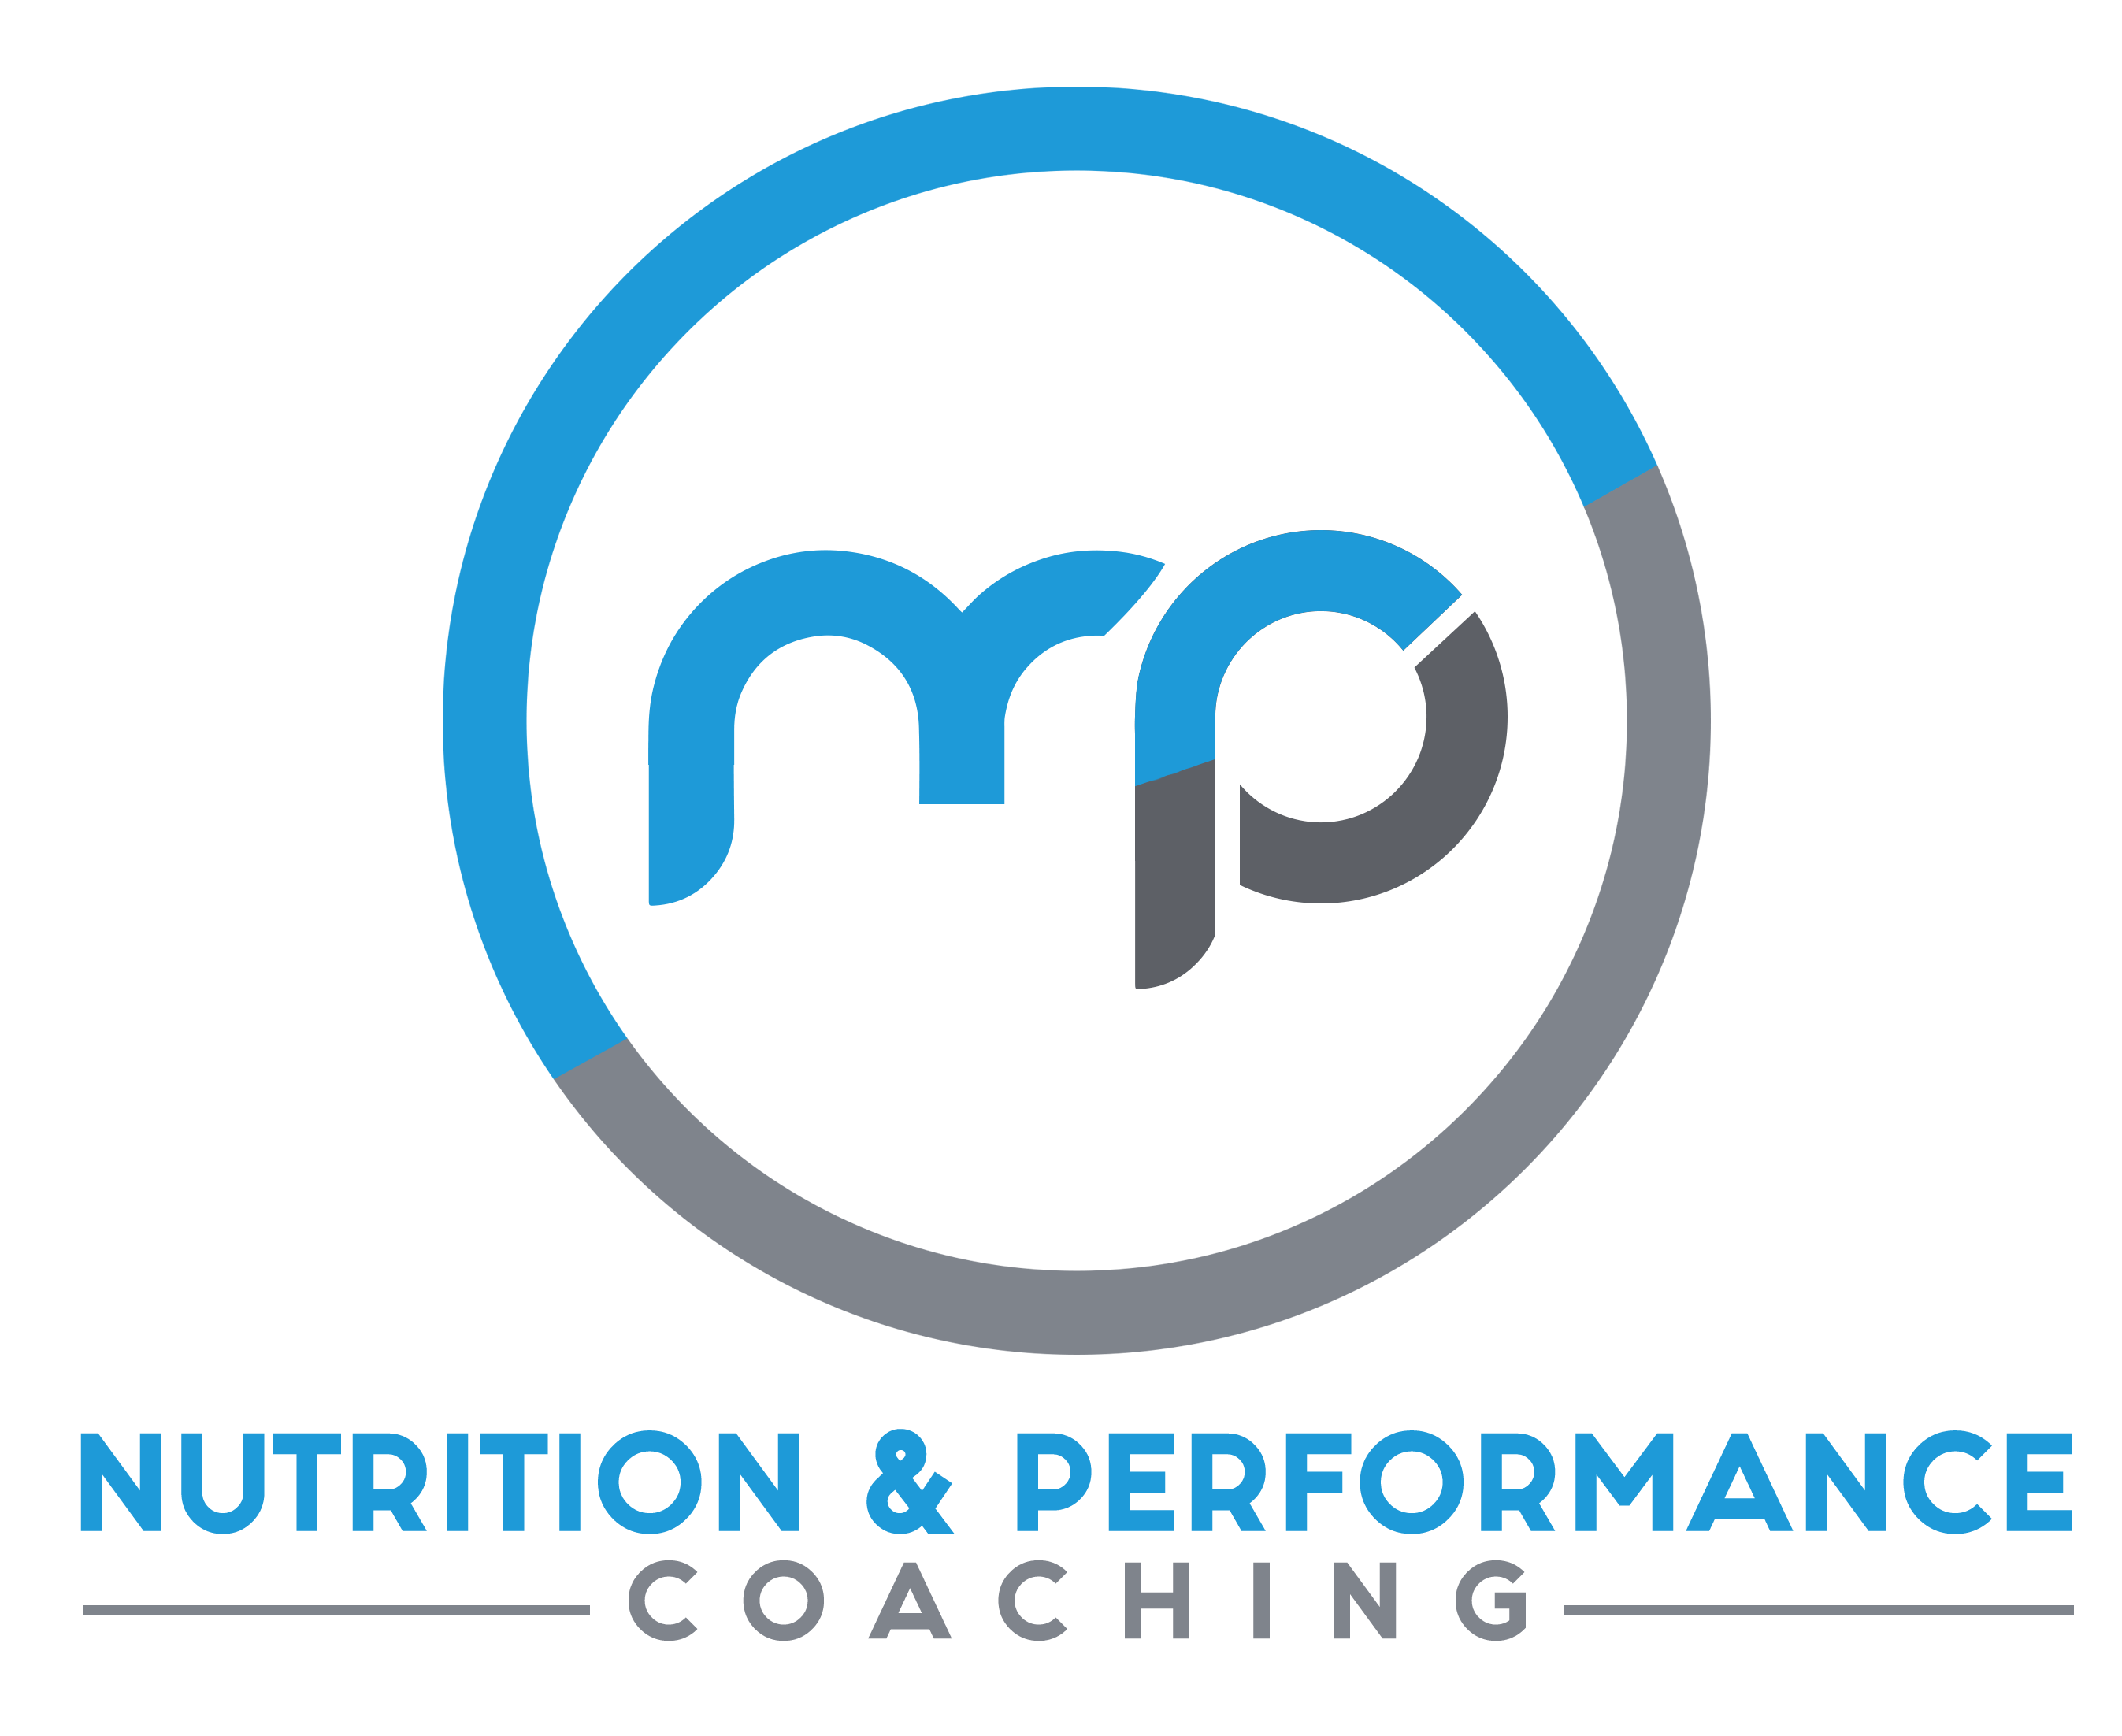 Nutrition und Performance Coaching